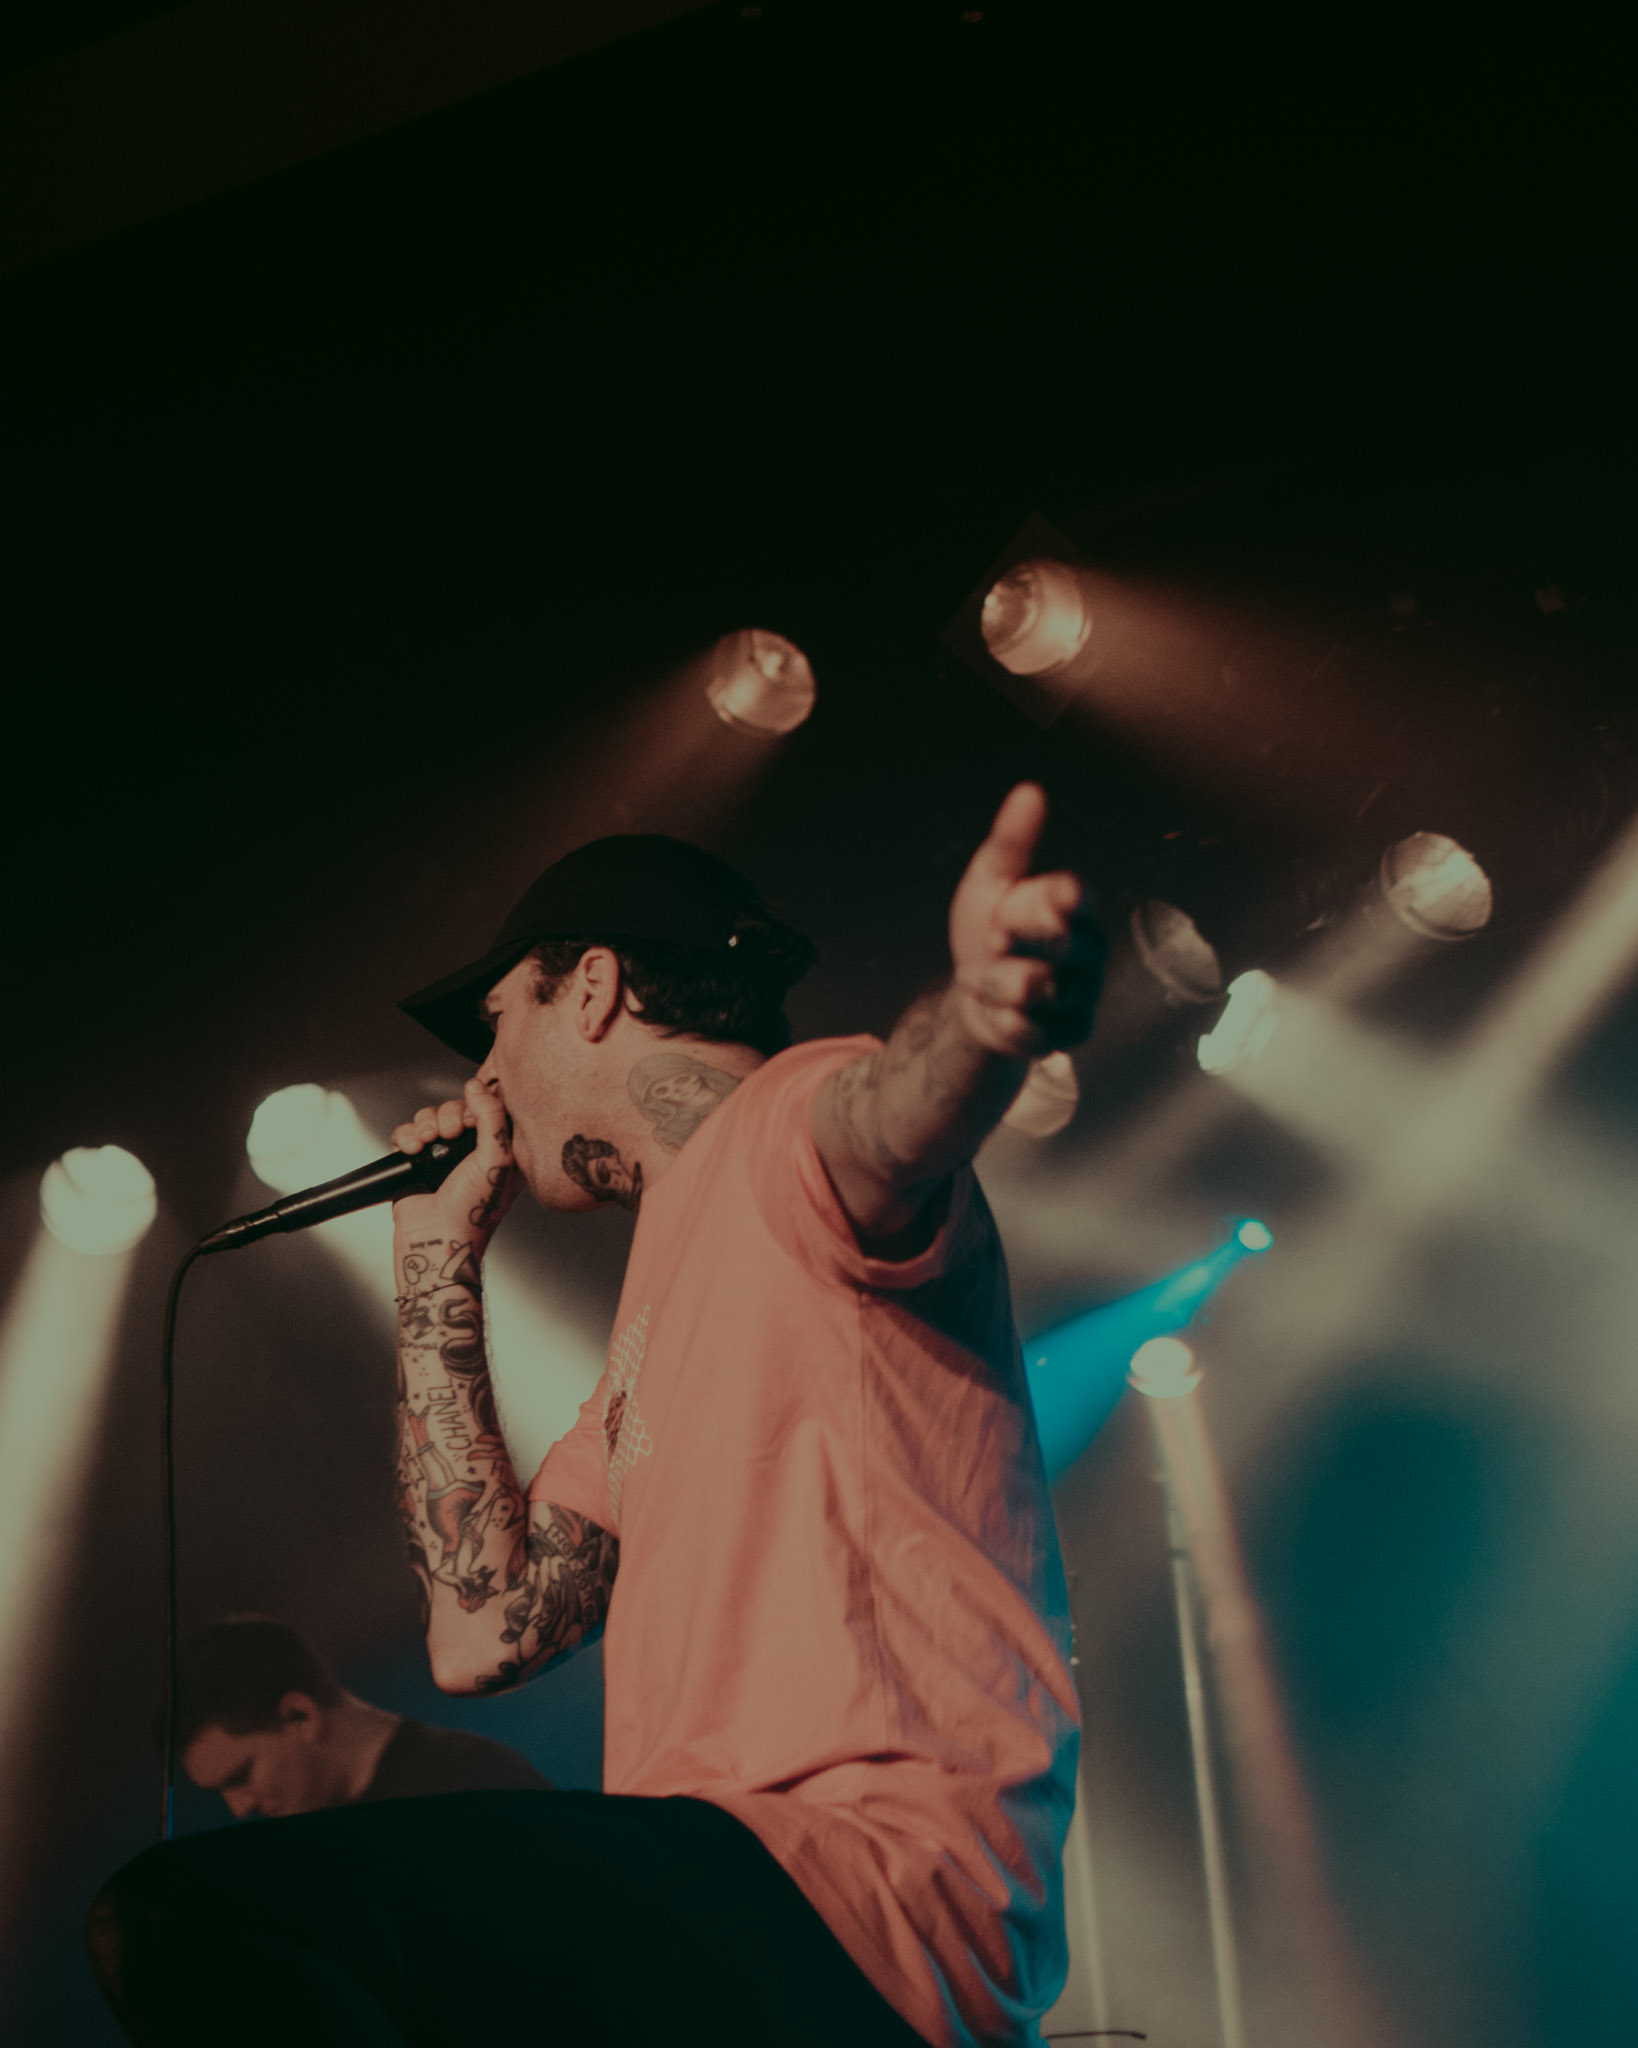 THE AMITY AFFLICTION_20171203_0105_@arnecrdnls.jpg